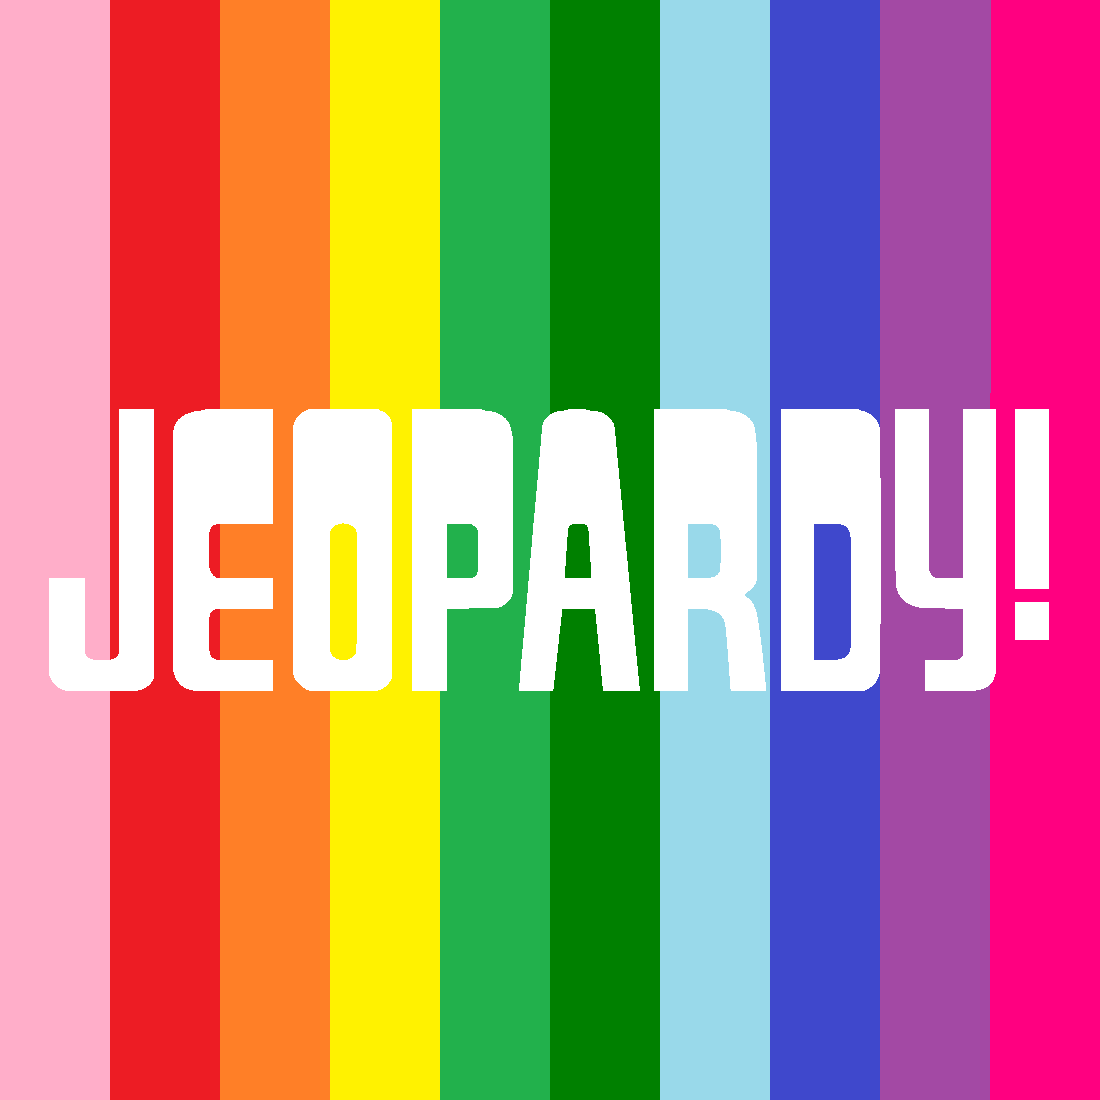 jeopardy 20clipart clipart panda free clipart images